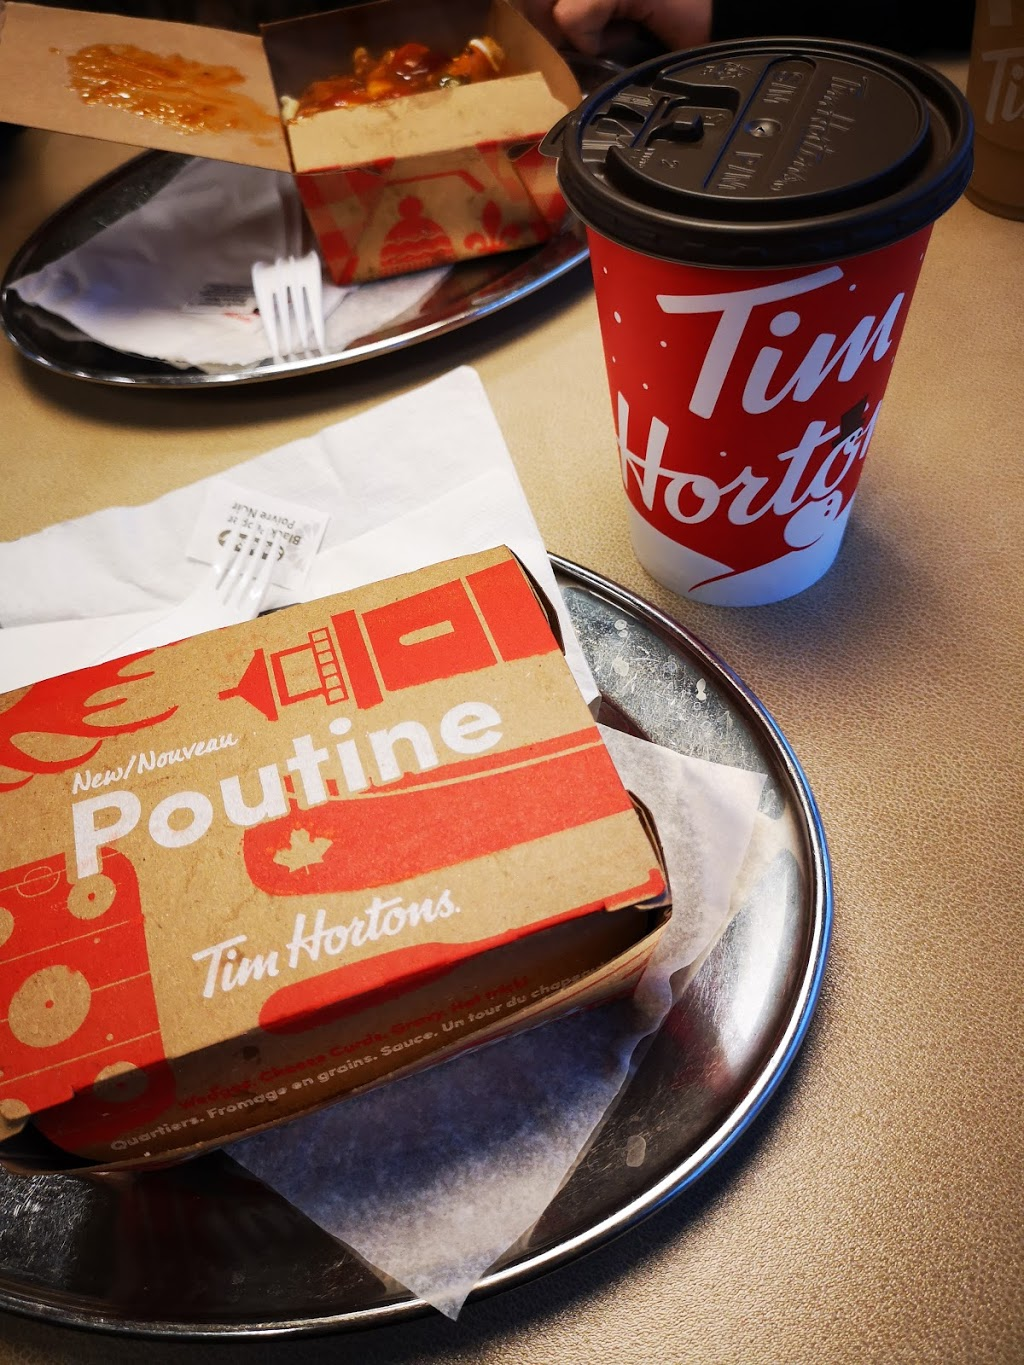 Tim Hortons | cafe | 335 Main St E, Kingsville, ON N9Y 1A7, Canada | 5197333911 OR +1 519-733-3911